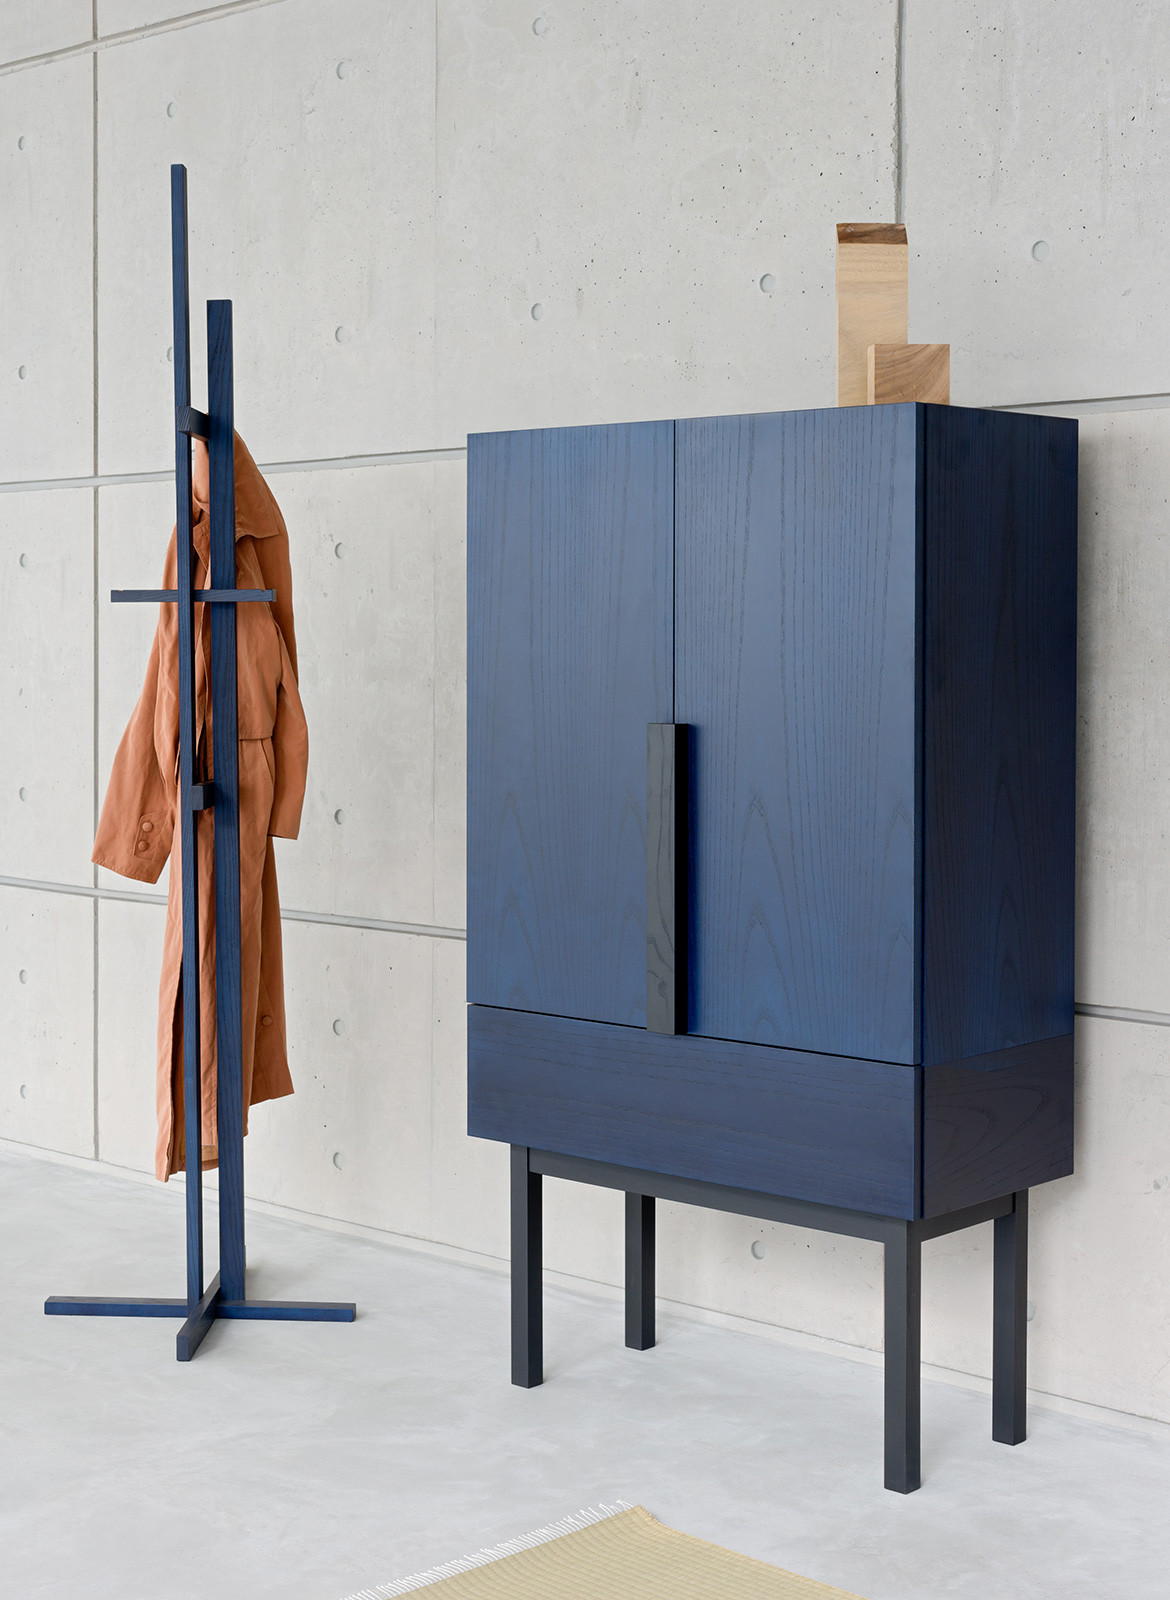 Habitus Loves... A Study Nook apato aizome cabinet